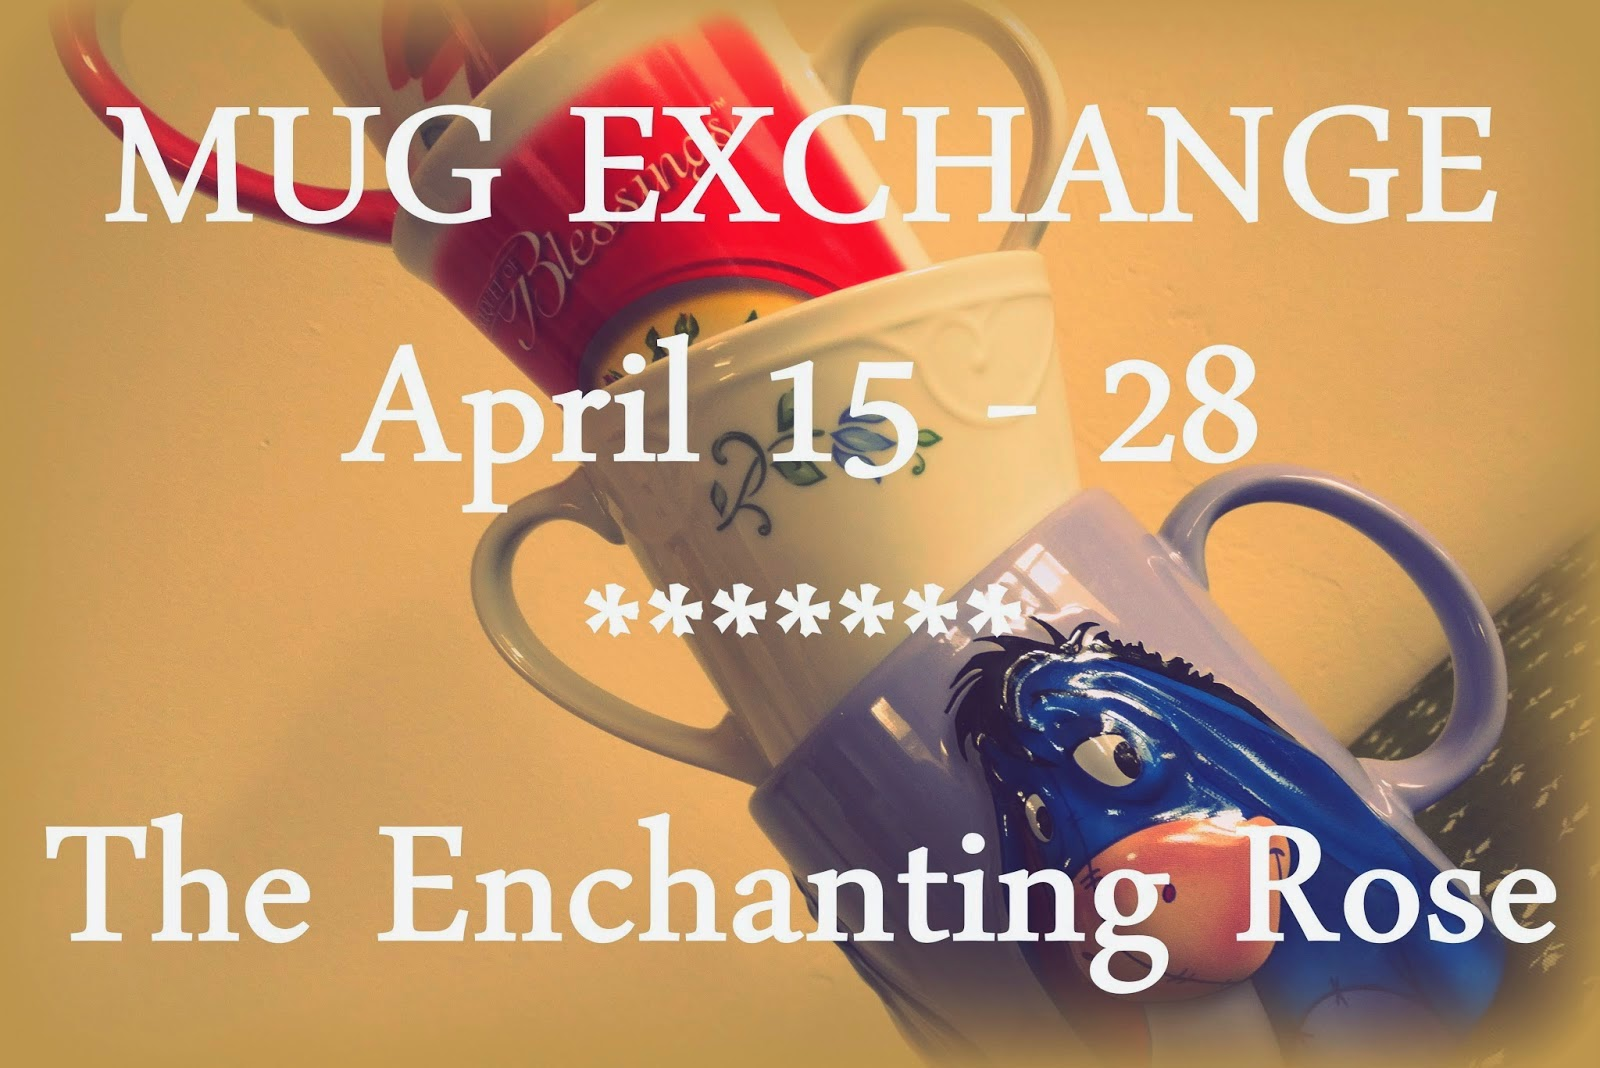 http://theenchantingrose.blogspot.com/2014/04/sign-up-for-mug-exchange.html